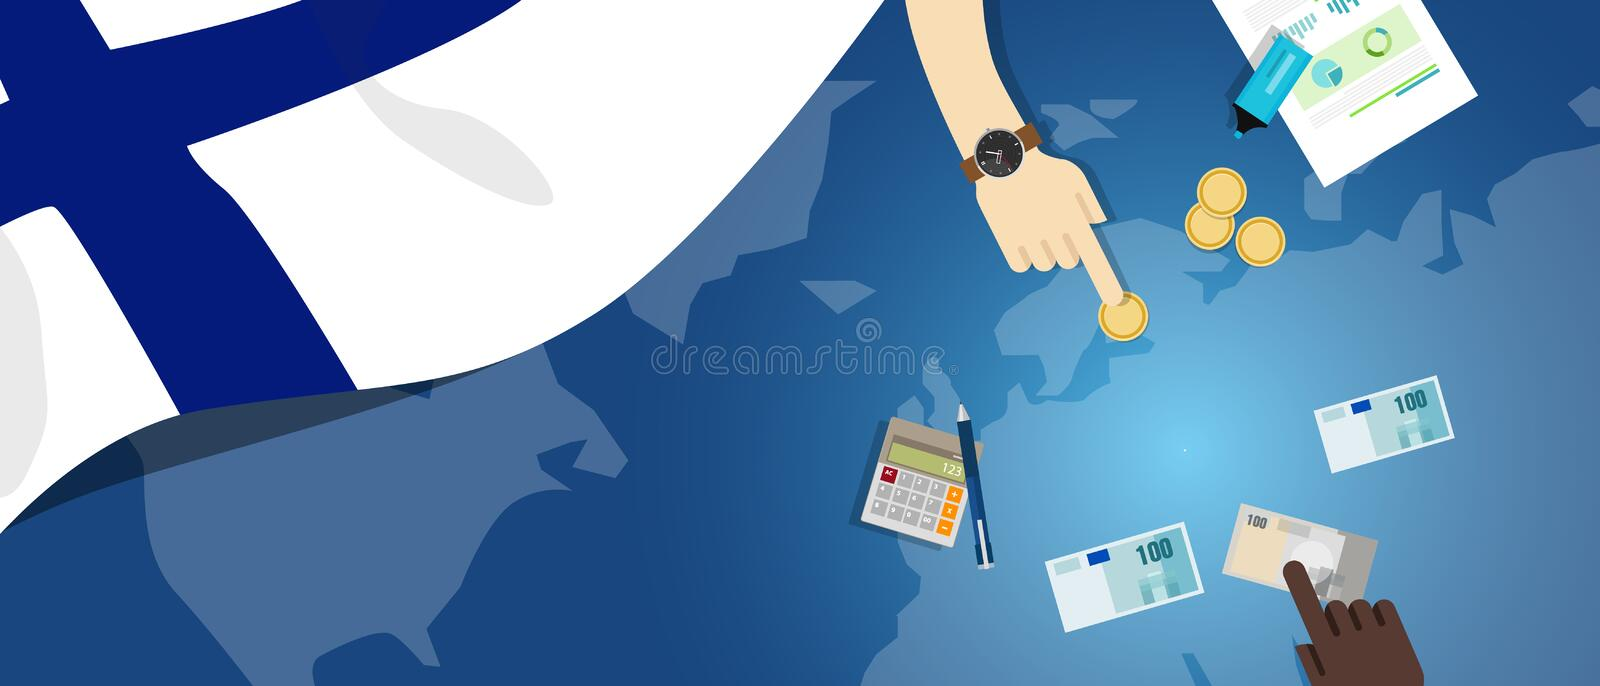 Finland economy fiscal money trade concept illustration of financial banking budget with flag map and currency. Vector stock illustration